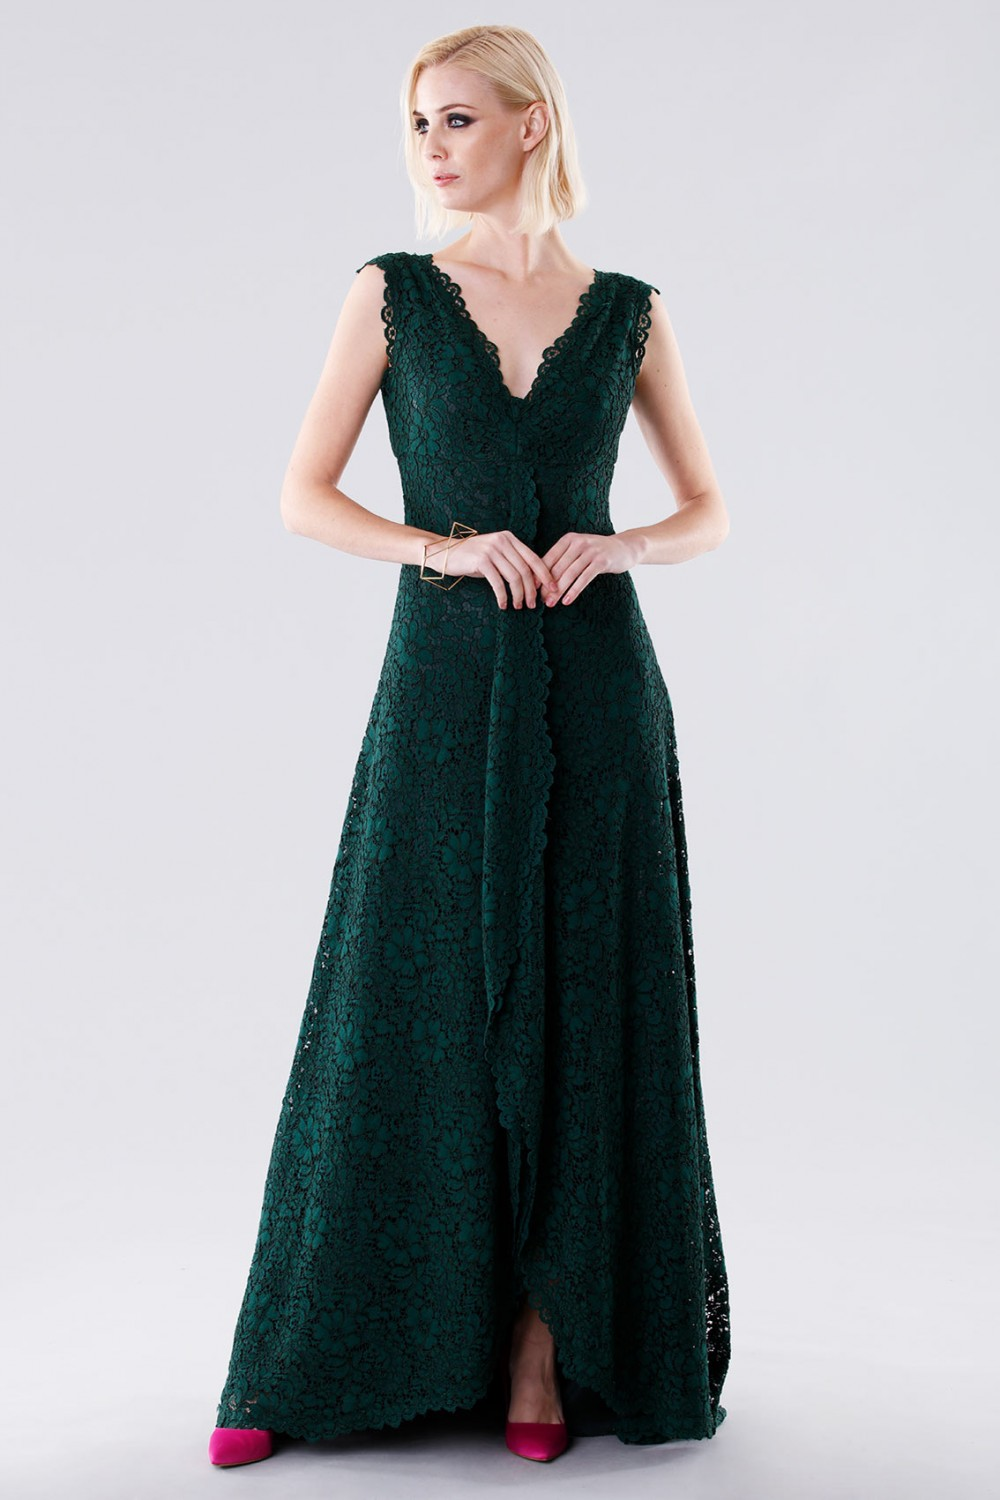 Green lace dress with drapery